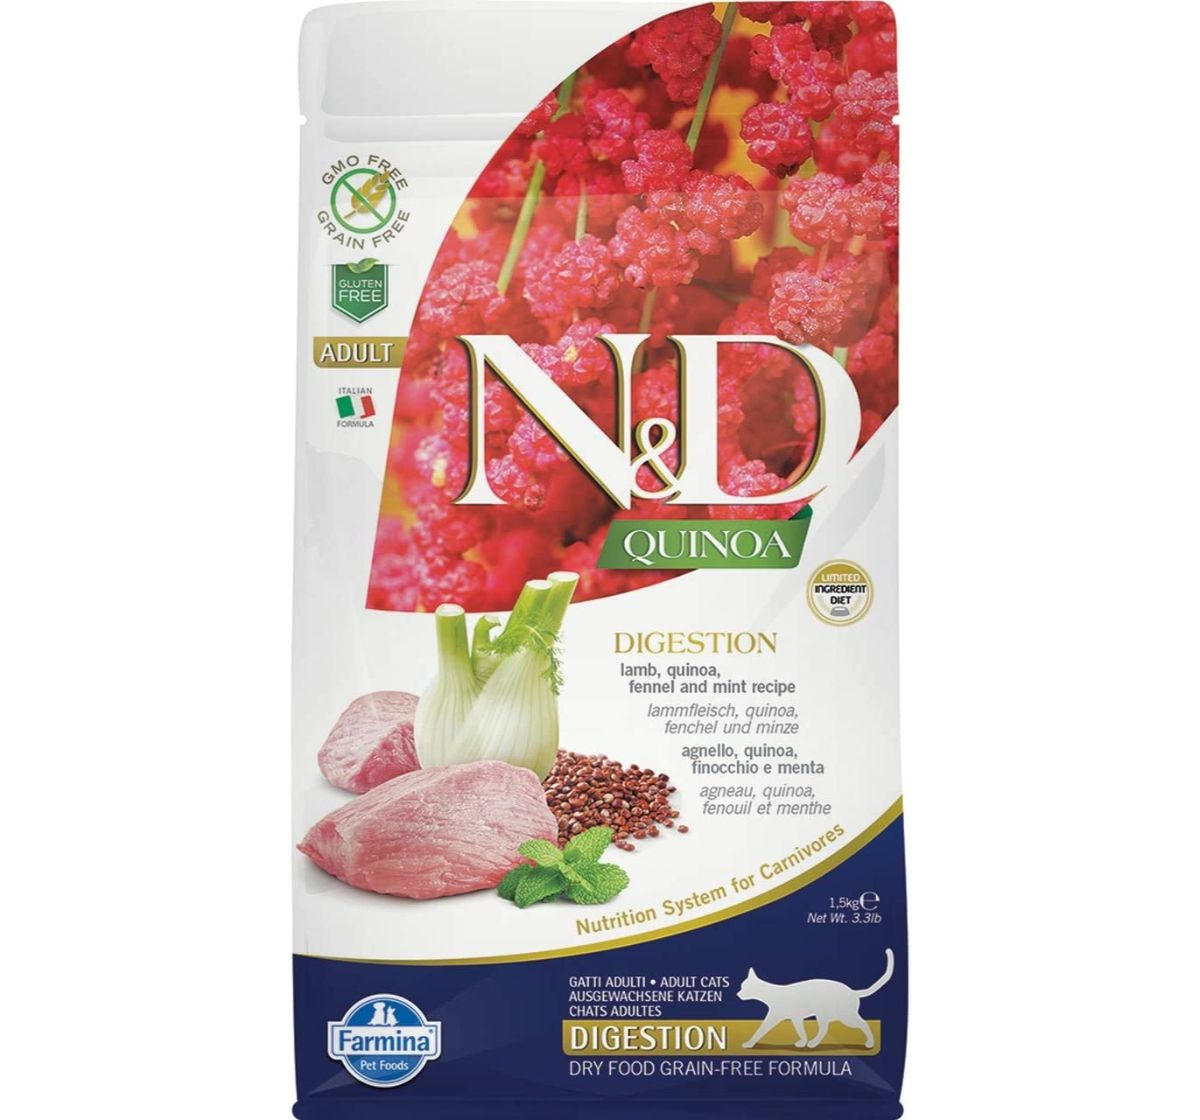 Natural & Delicious Grain Free Quinoa Digestion Lamb Adult - 1.5 Kg (Pack Of 8)